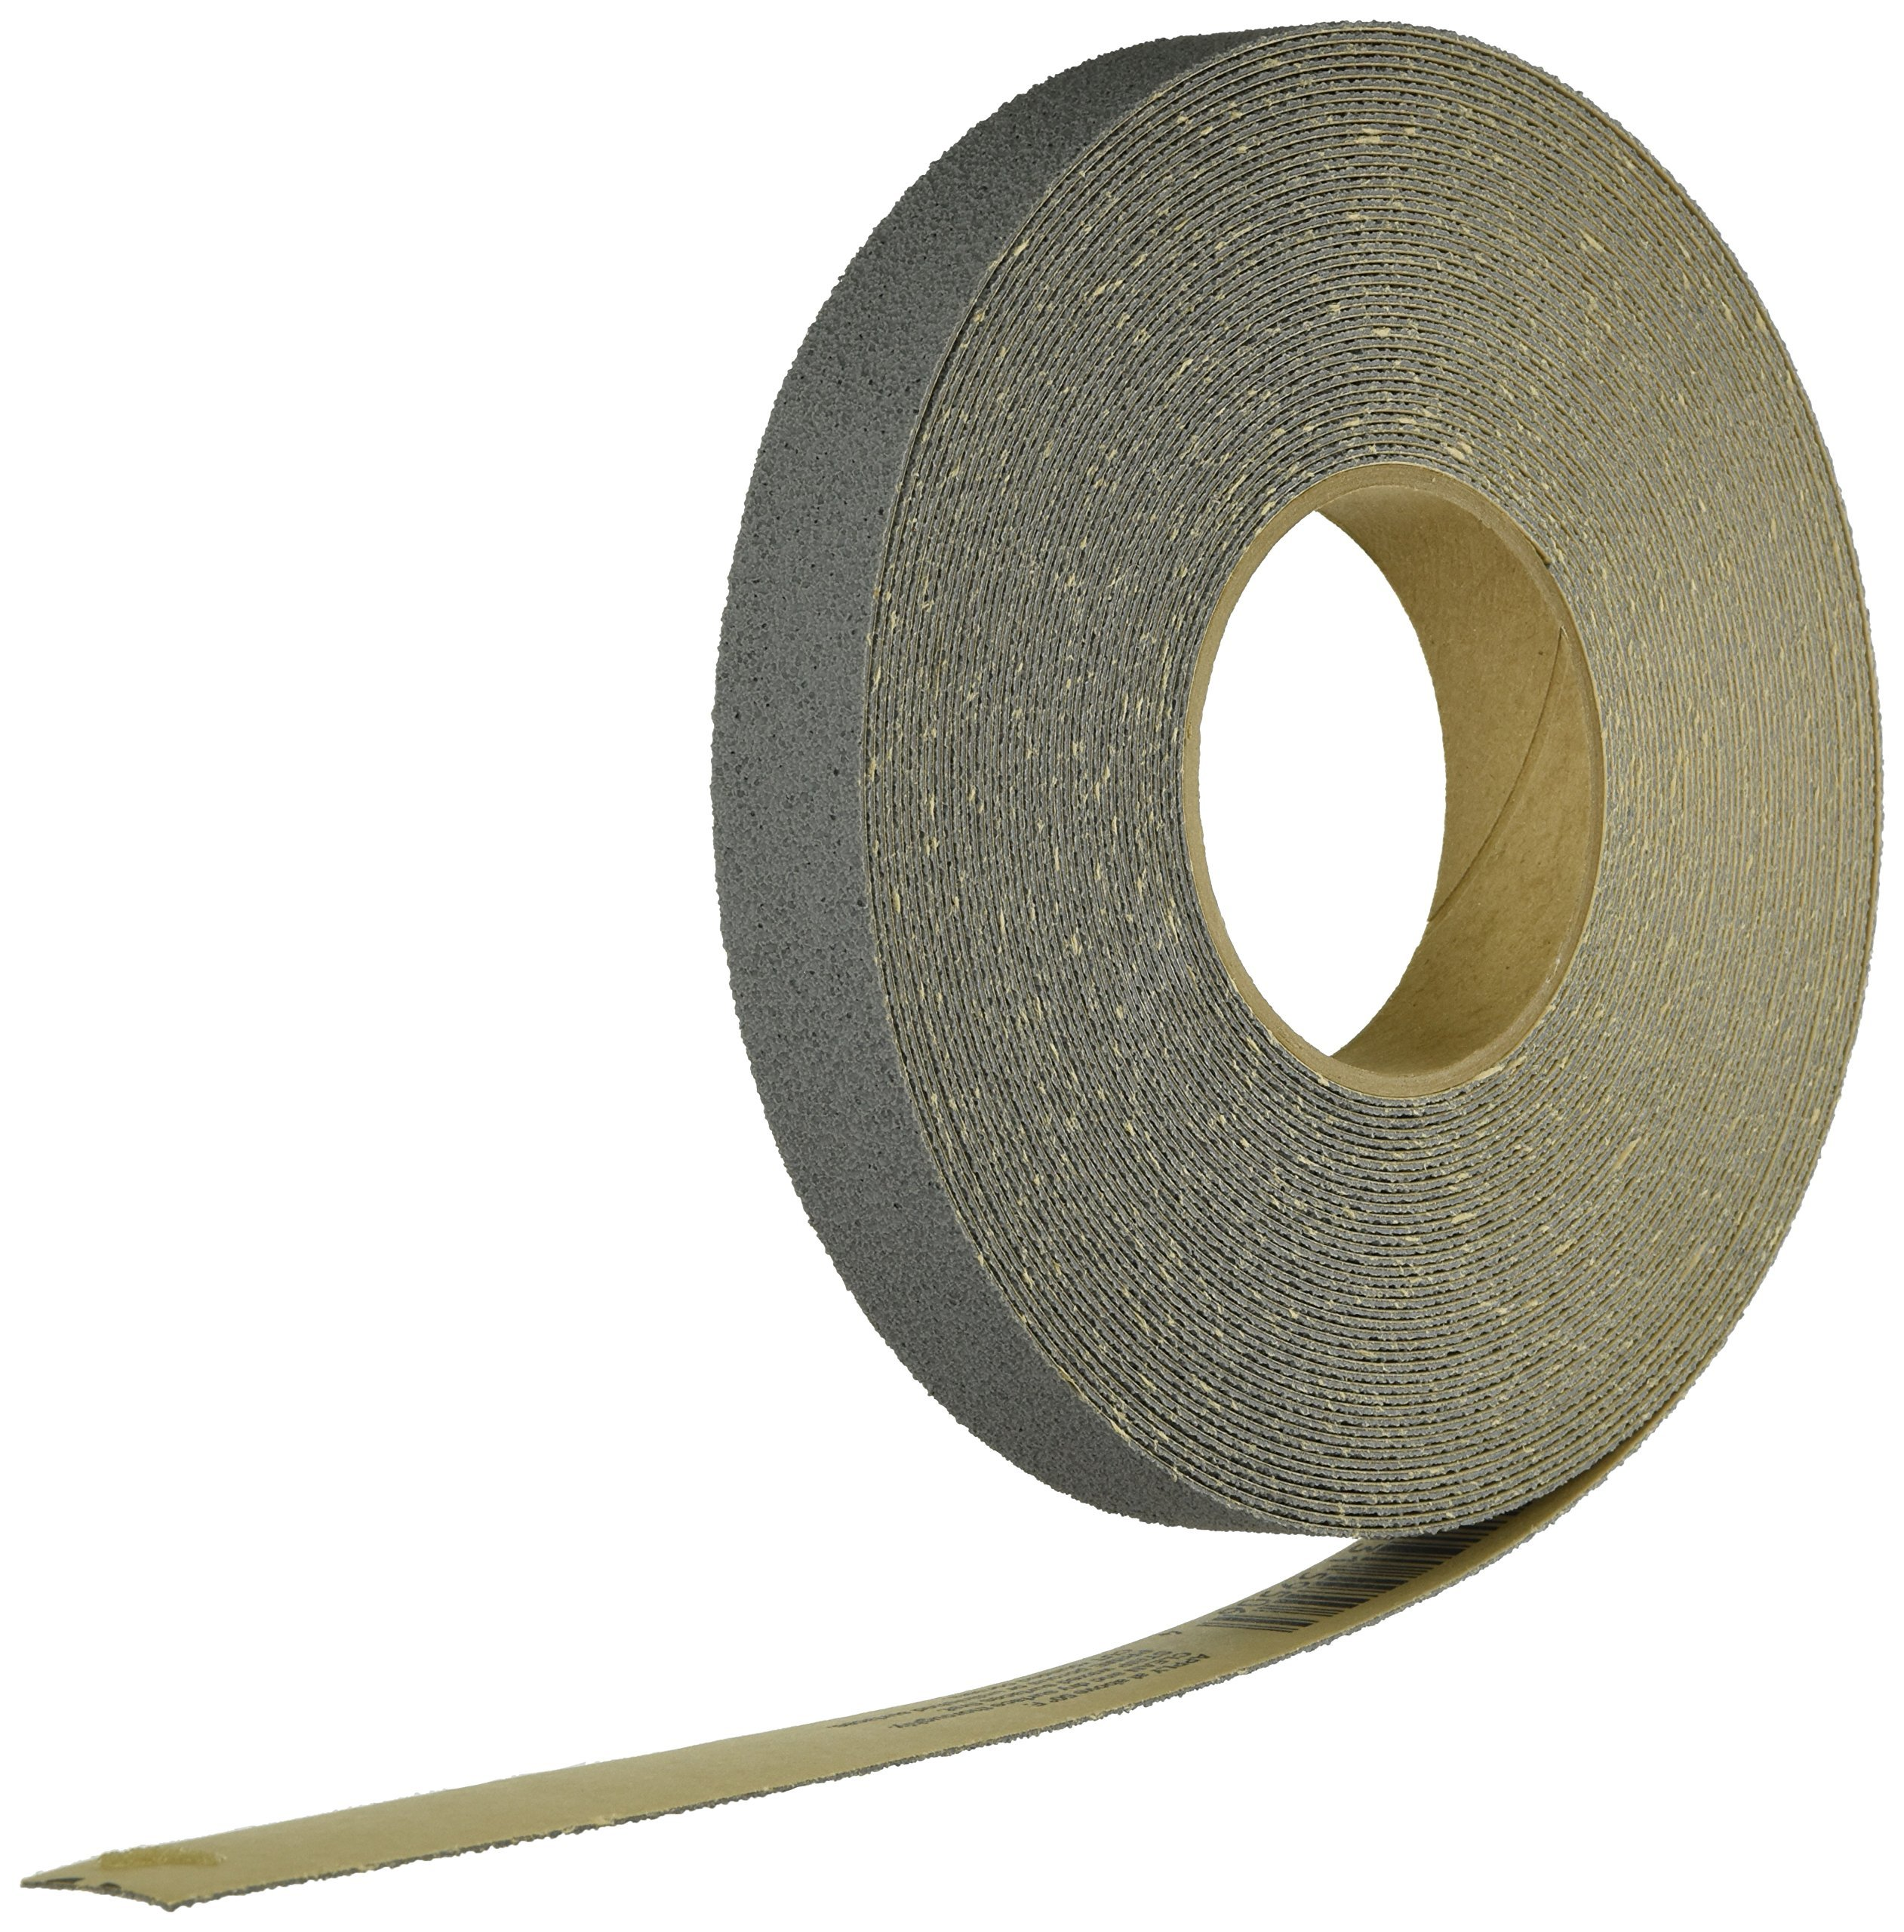 3M 7739NA Safety-Walk Medium Duty Tread - Gray 1-Inch-by-60-Foot Bulk Roll